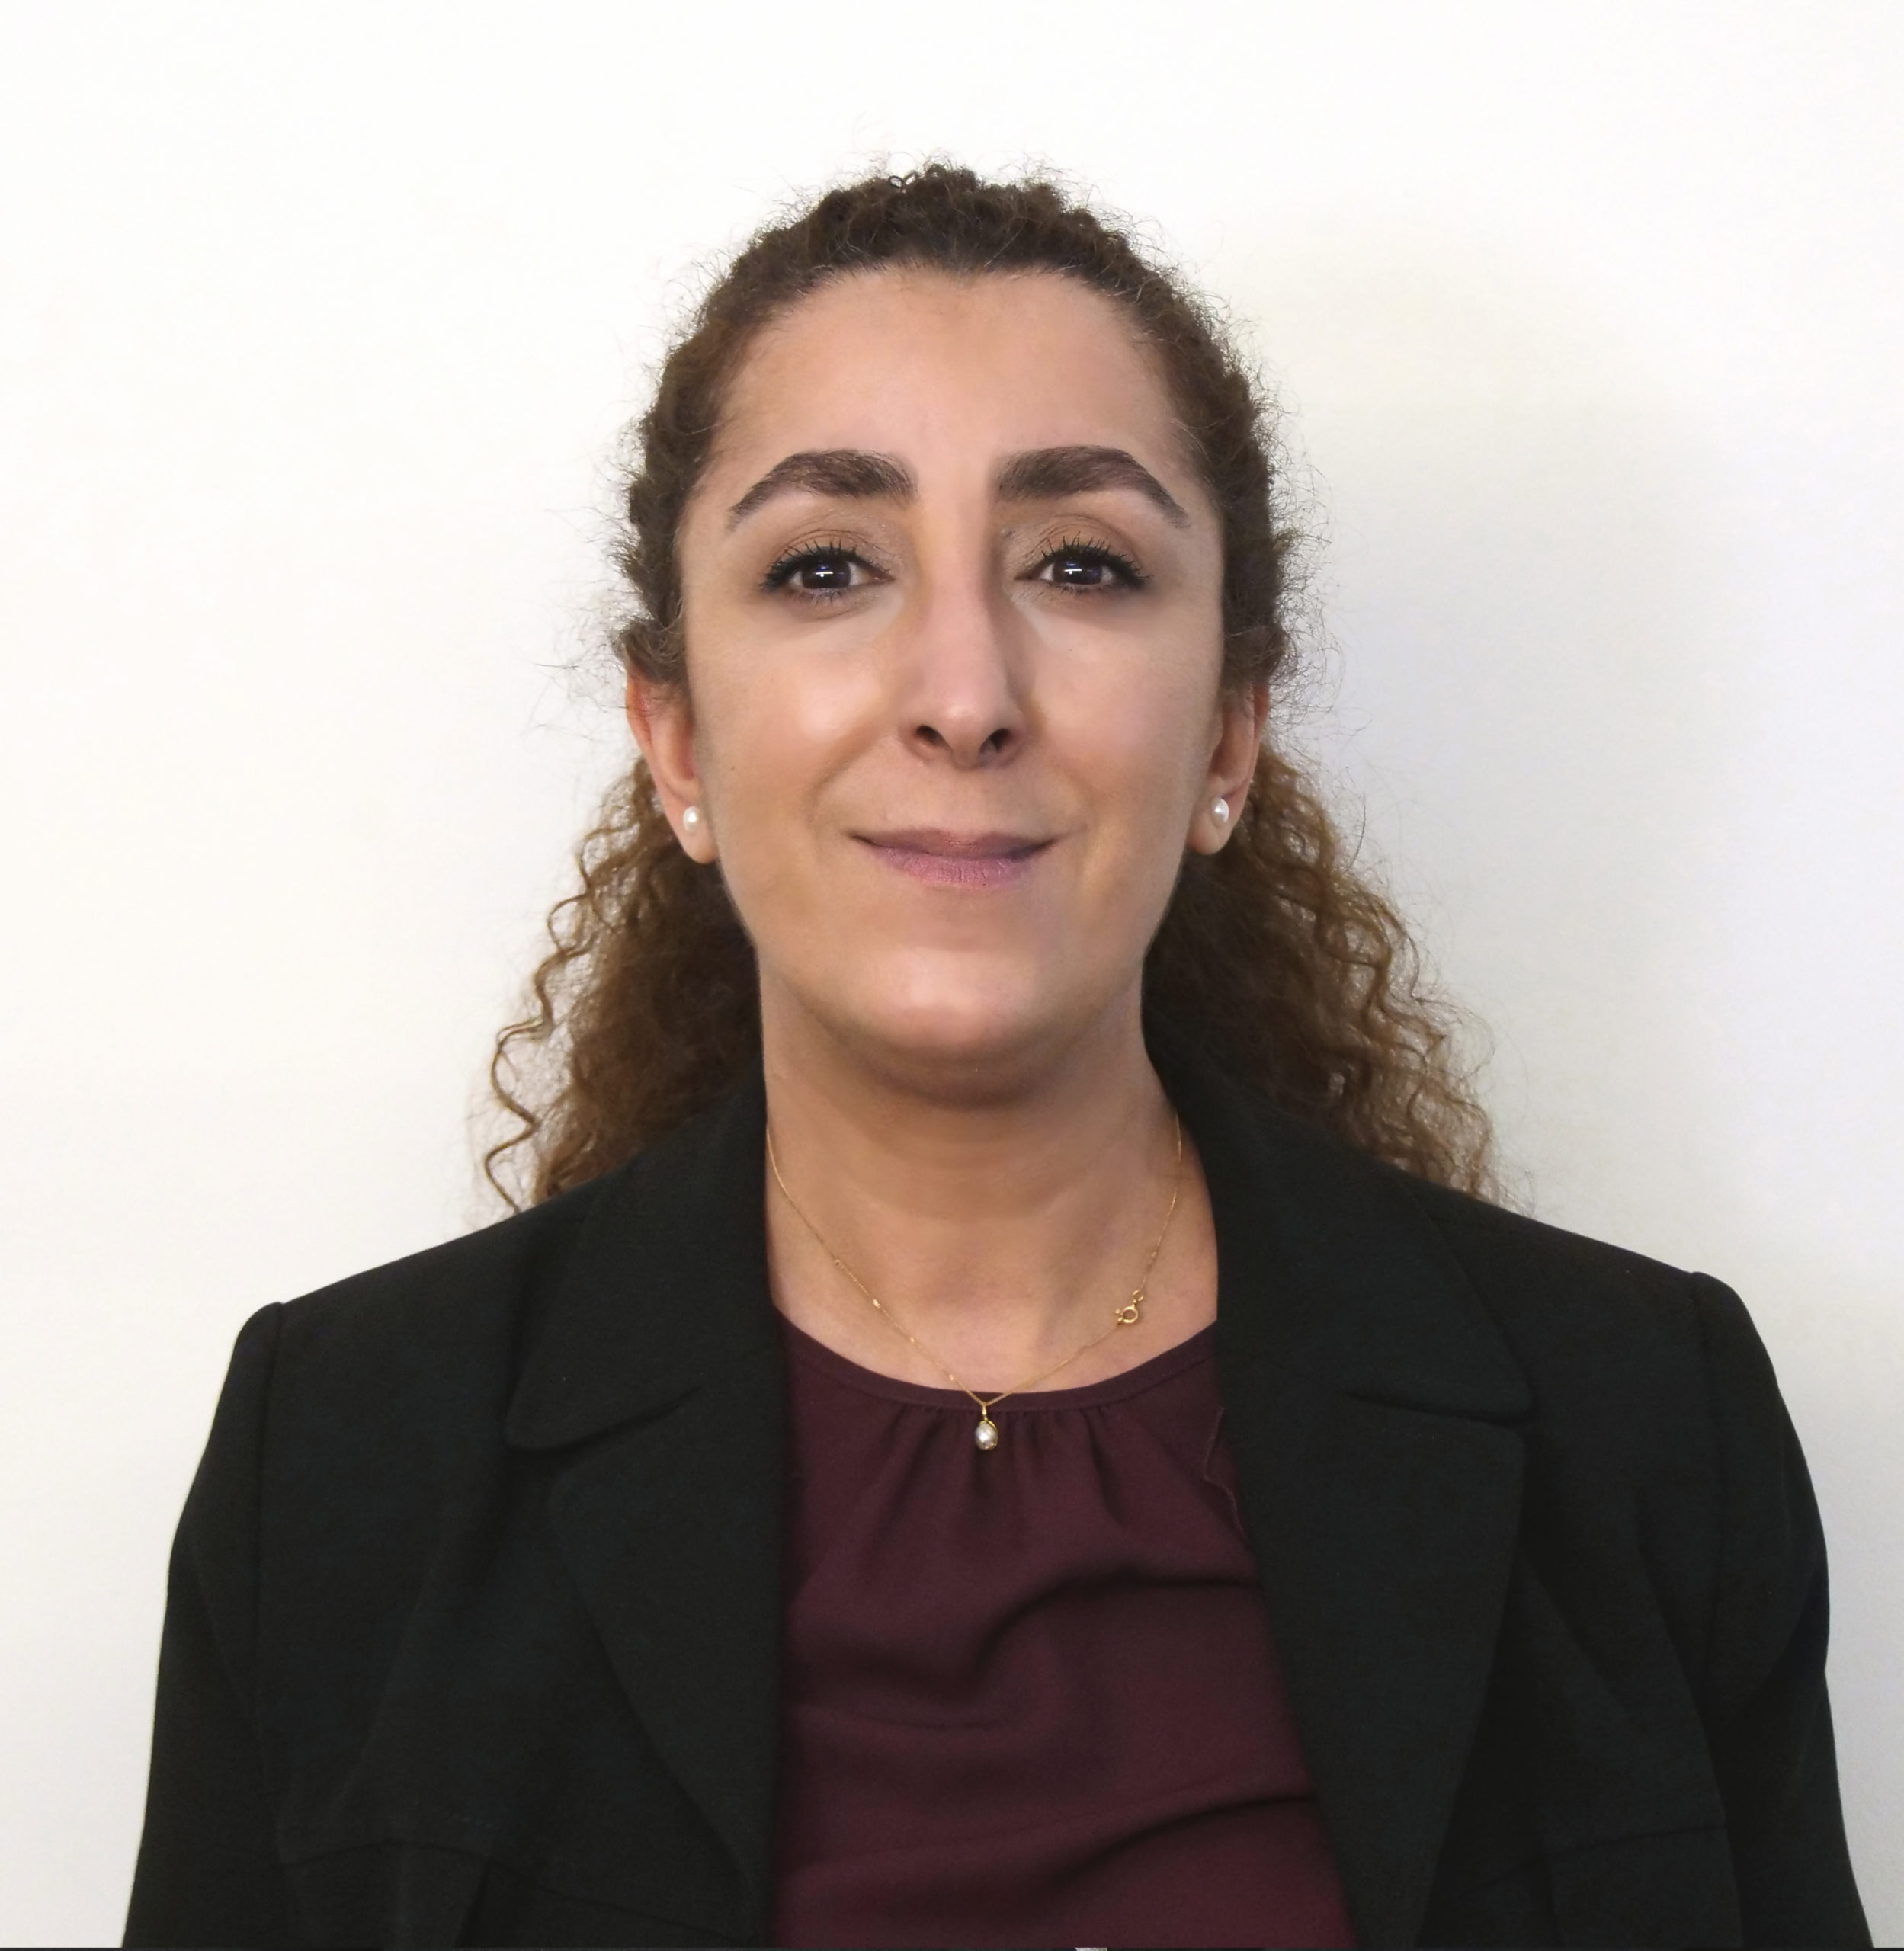 Activ'Partners formation consultant Nathalie Boronad